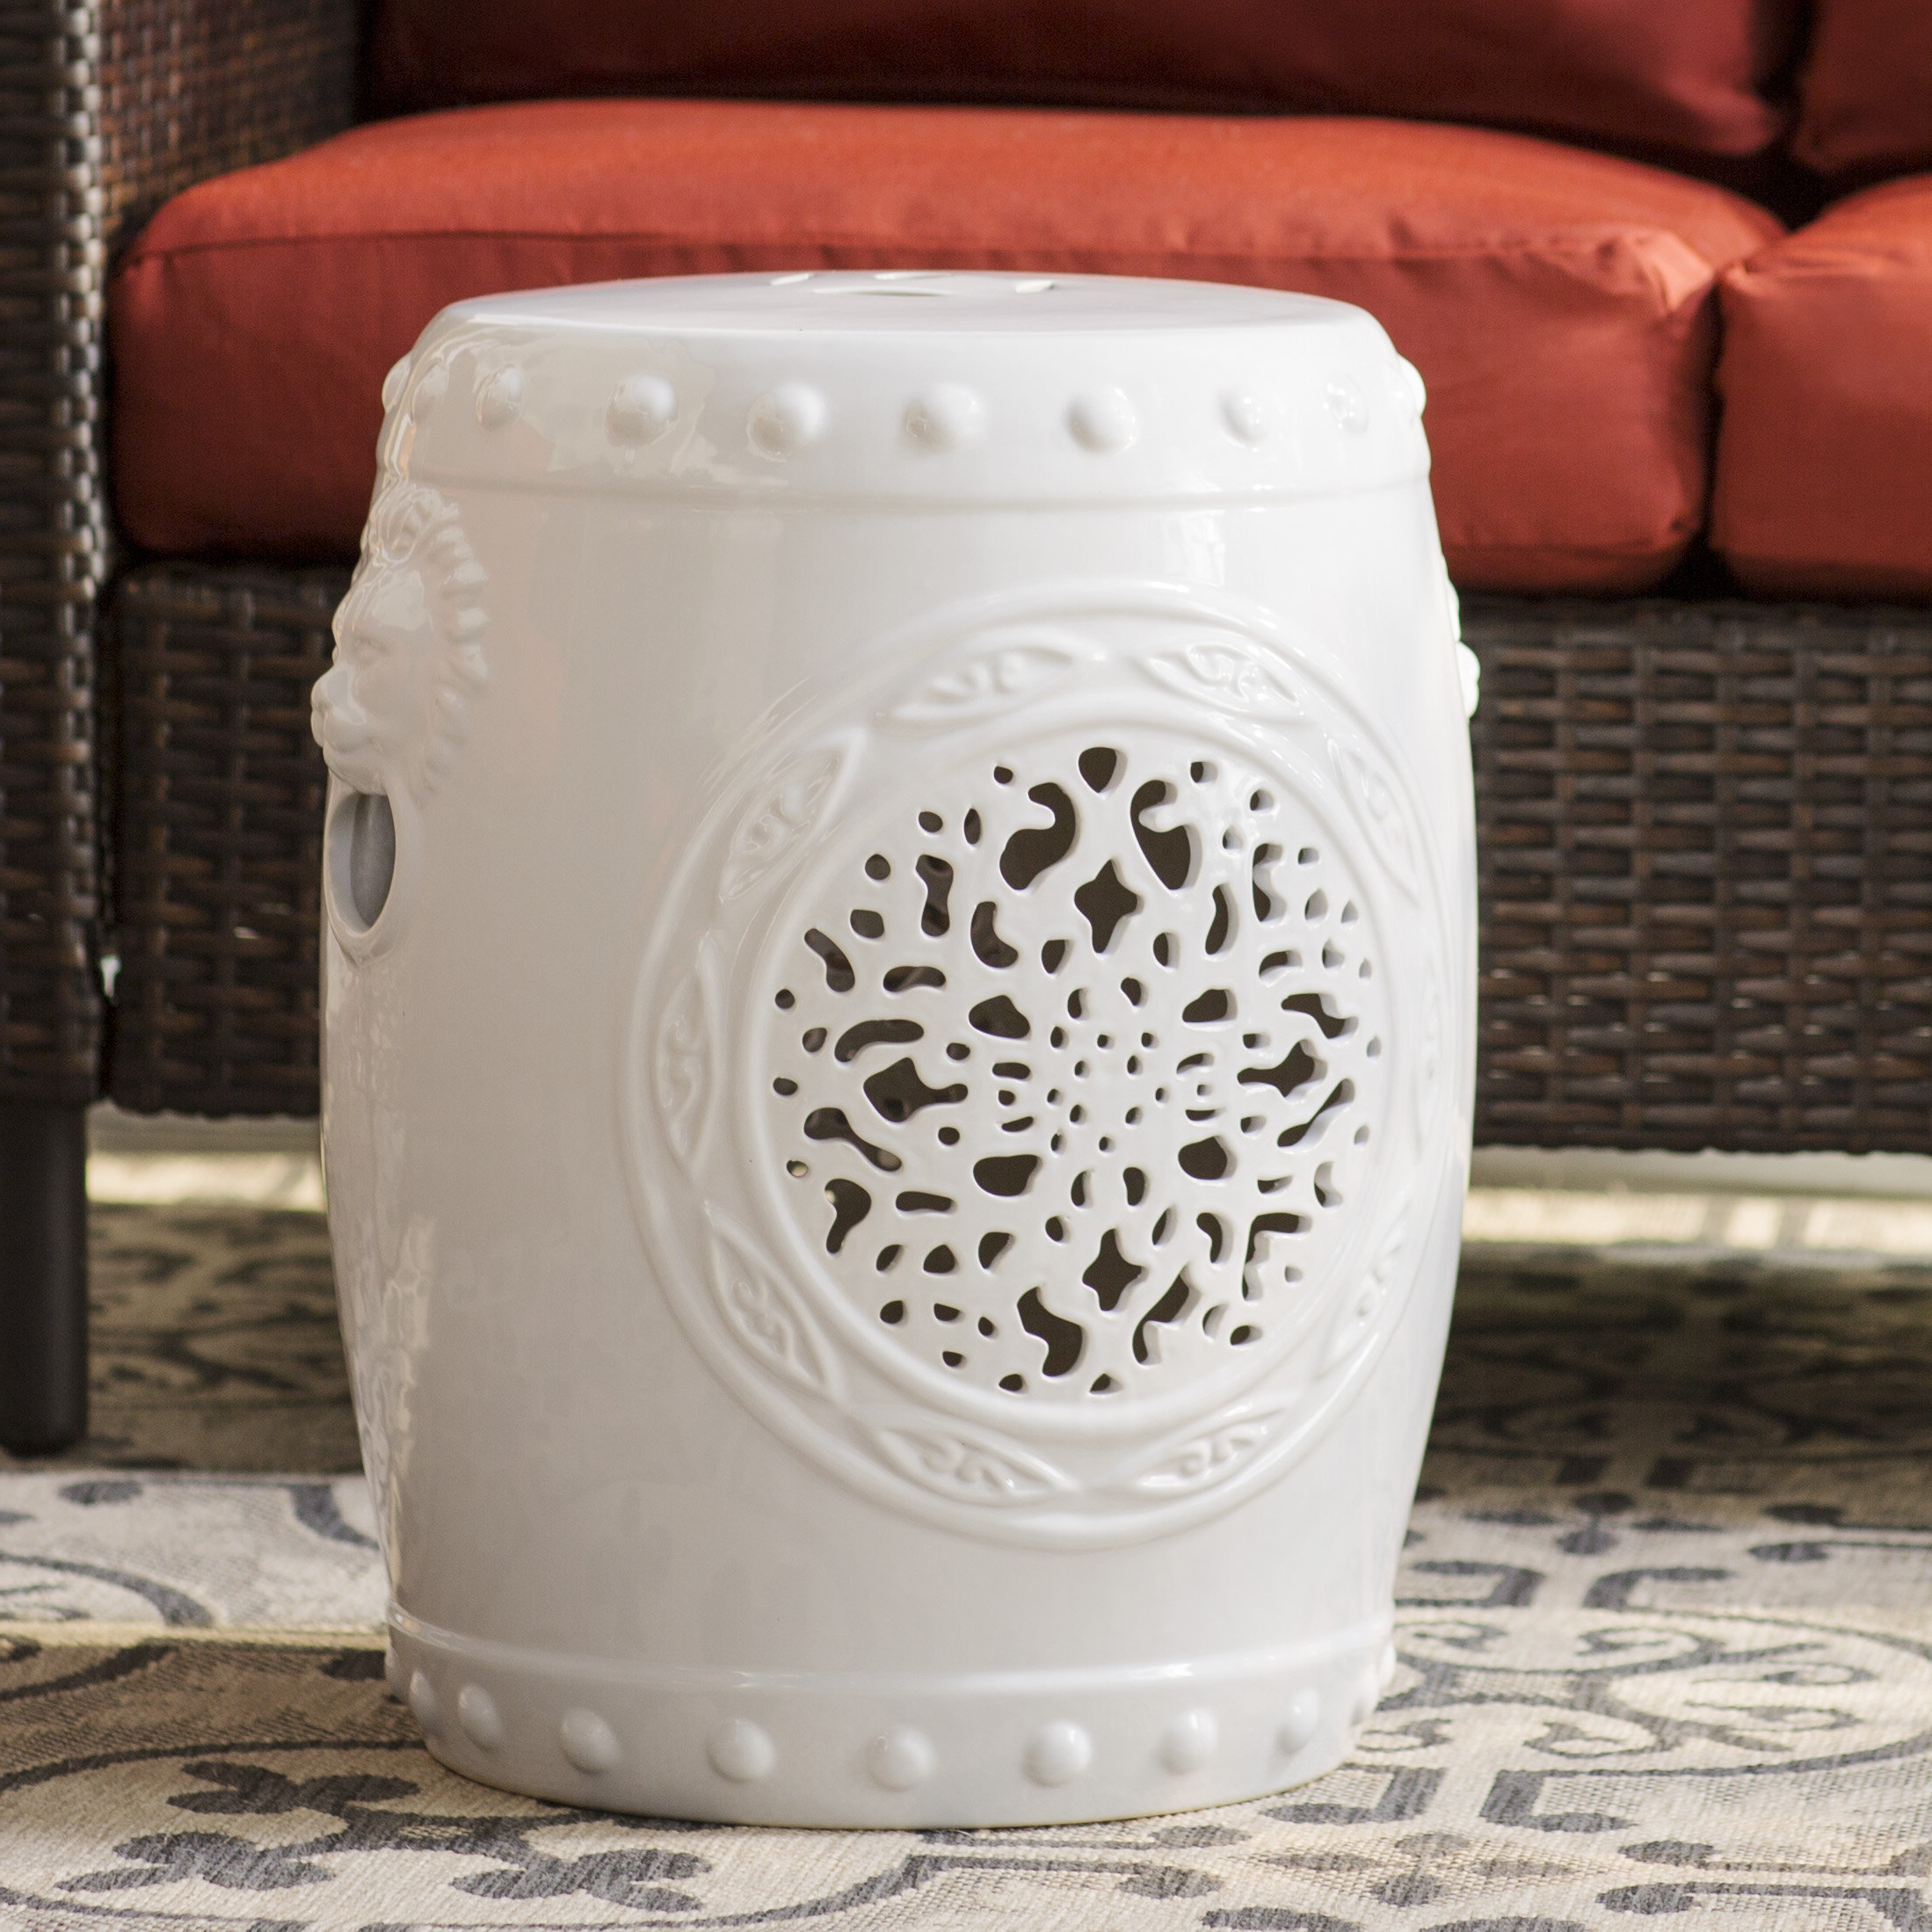 2019 Tufan Cement Garden Stools Intended For Garden White Accent Stools You'll Love In (View 14 of 30)